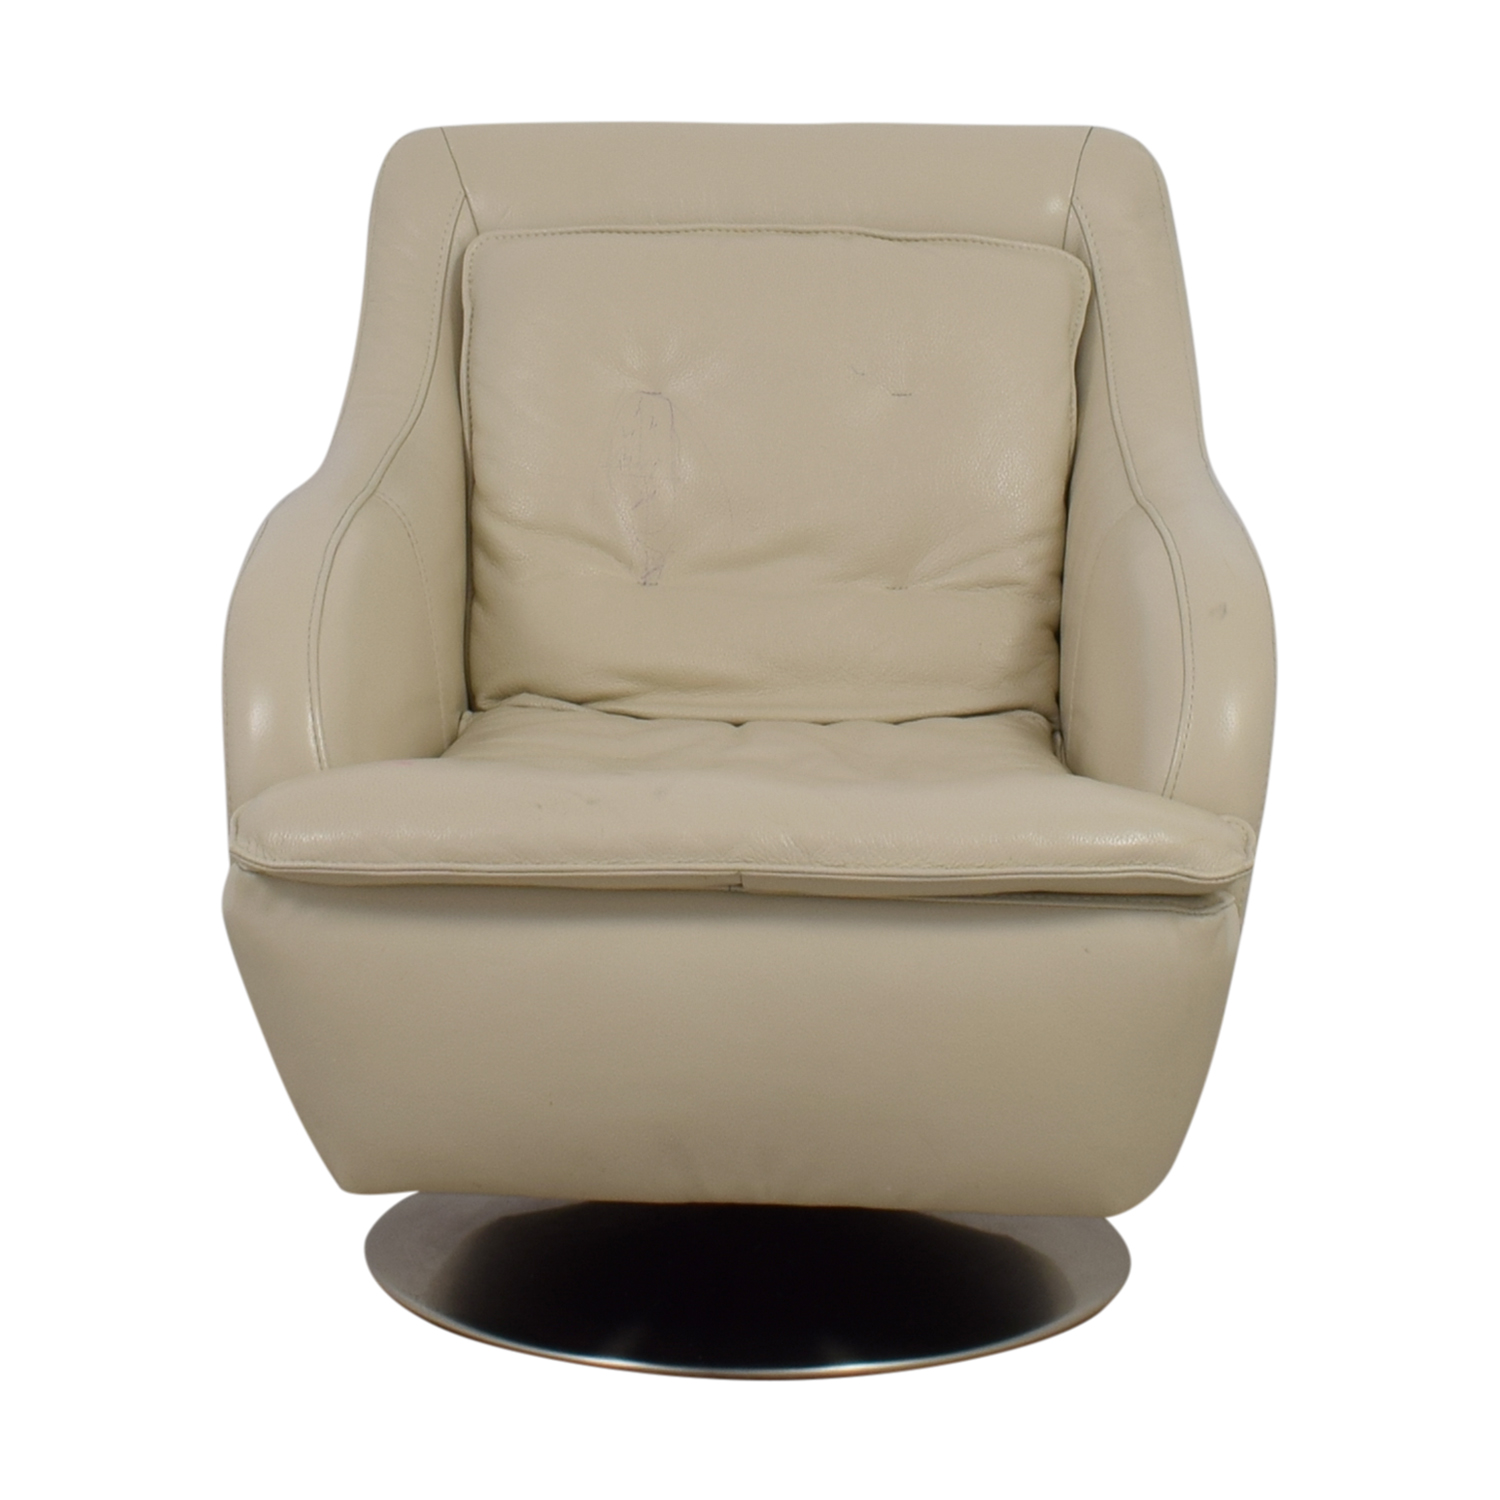 Raymour & Flanigan White Leather Accent Chair Raymour & Flanigan